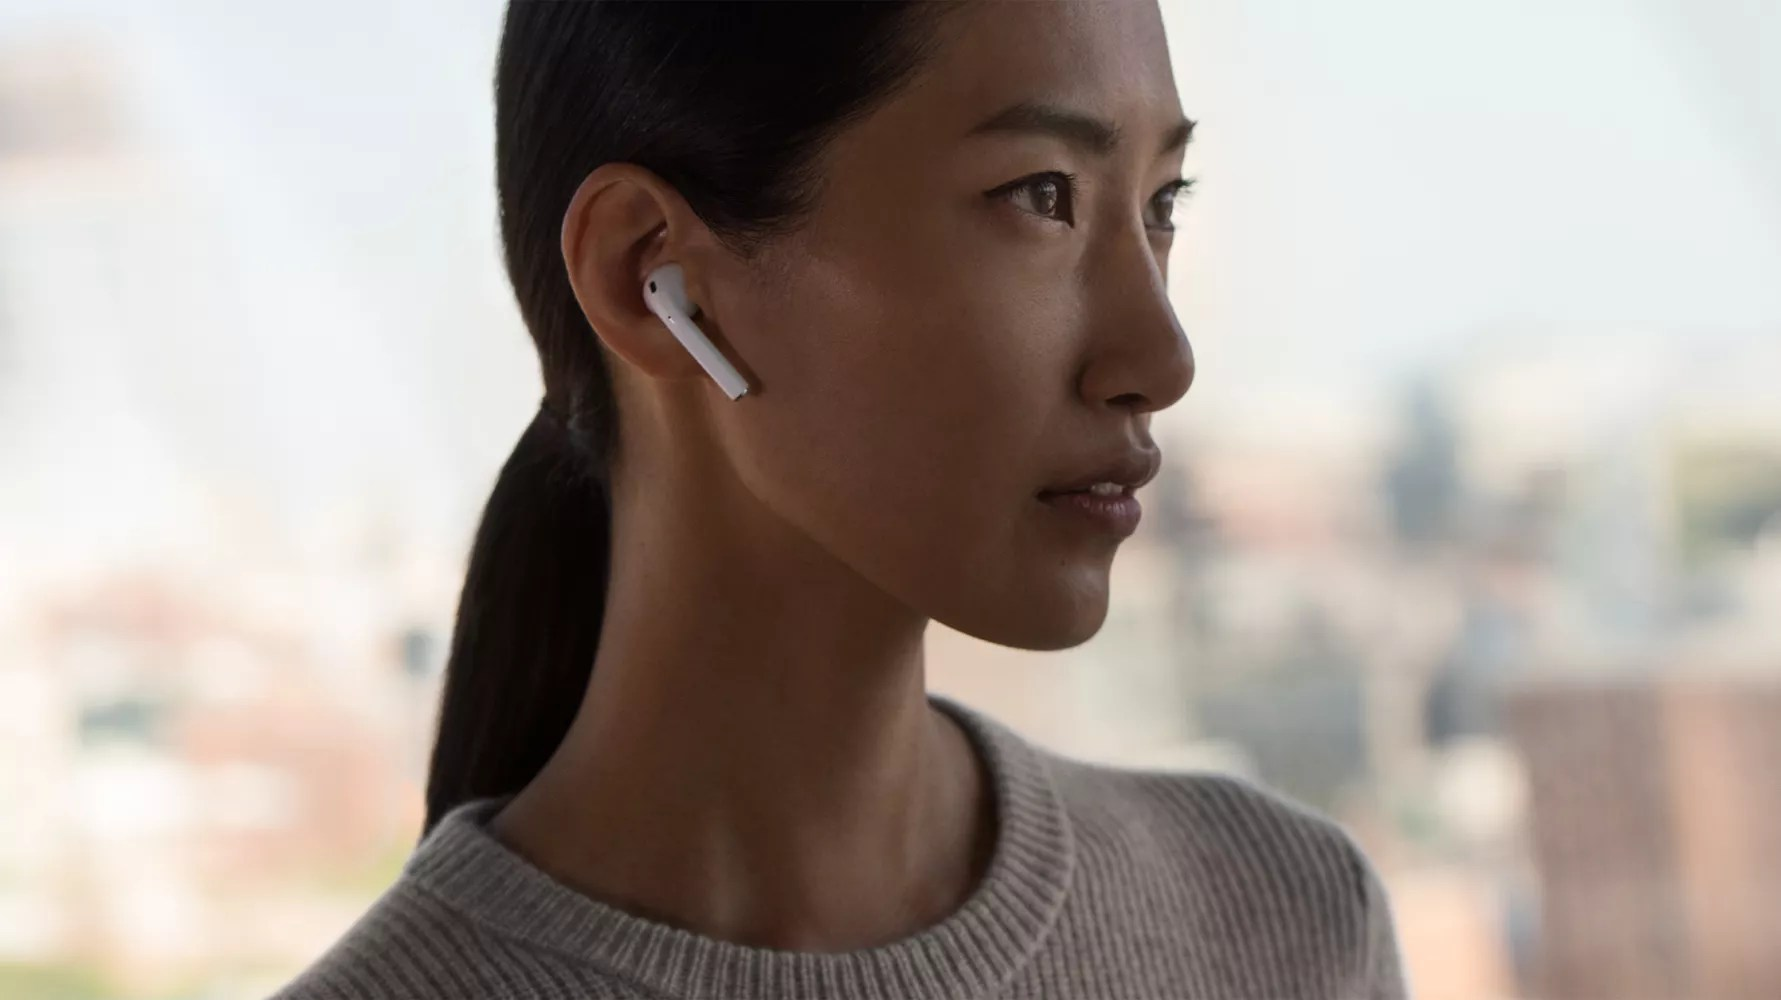 Will Hearables' Installed Base Reach 72 Million this Year?